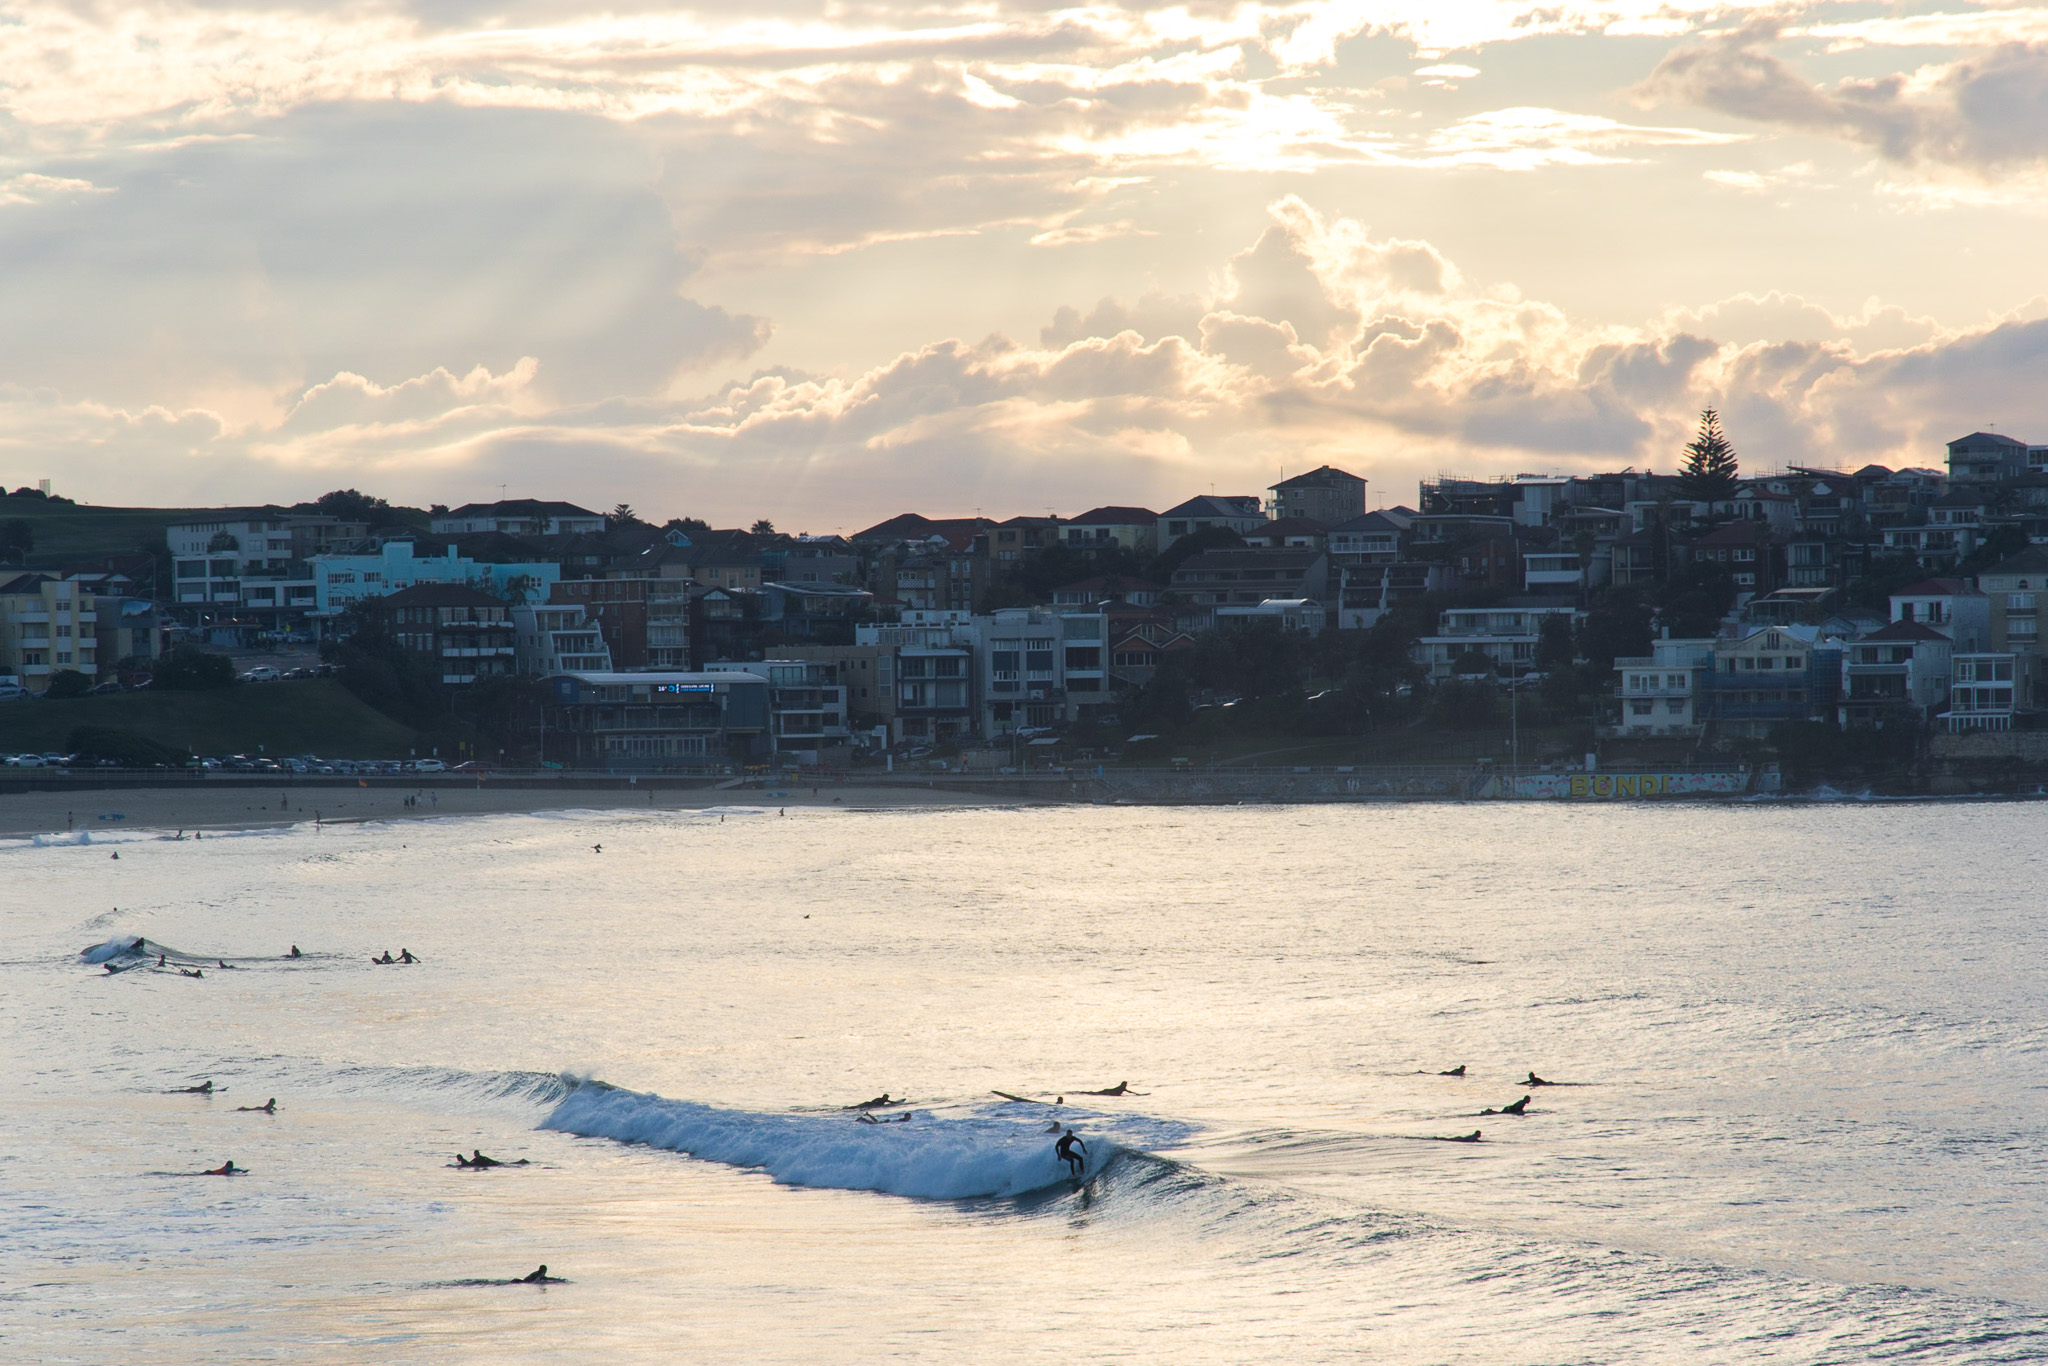 Sunrise surfing at bondi beach in sydney